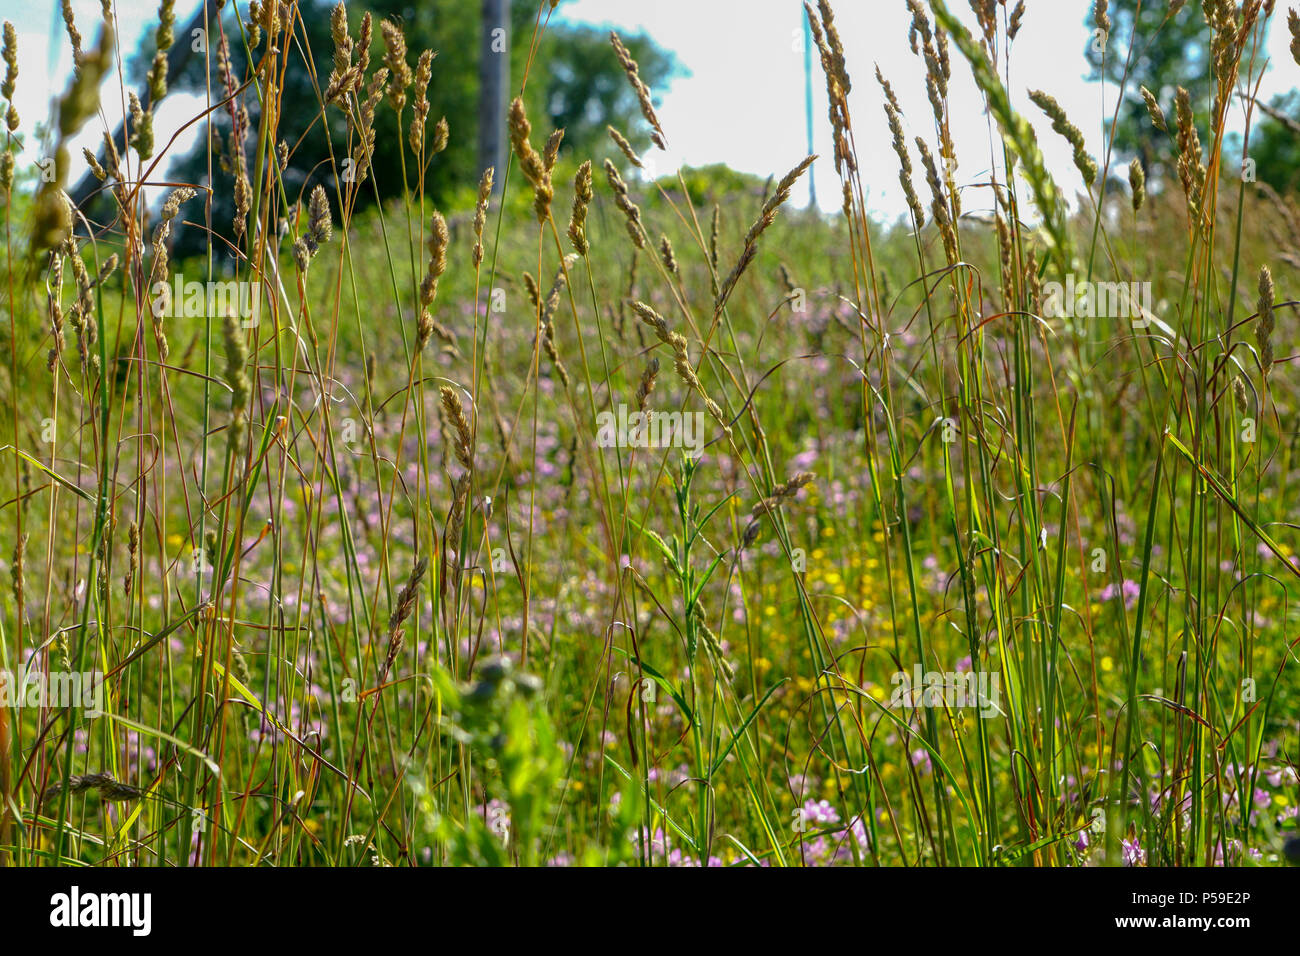 Tall grass flower stock photos tall grass flower stock images alamy tall grass stock image mightylinksfo